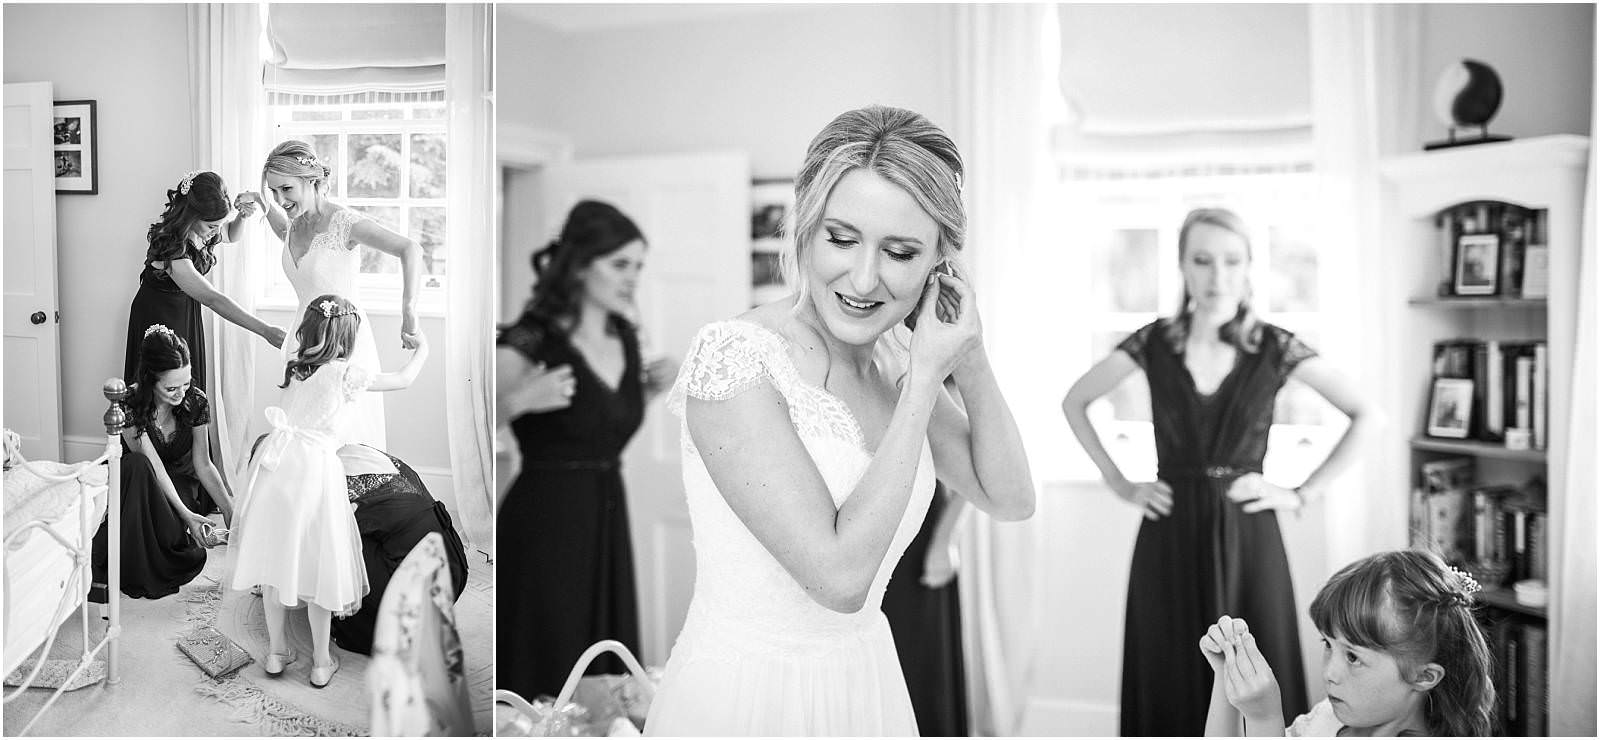 Bride getting ready for marquee wedding